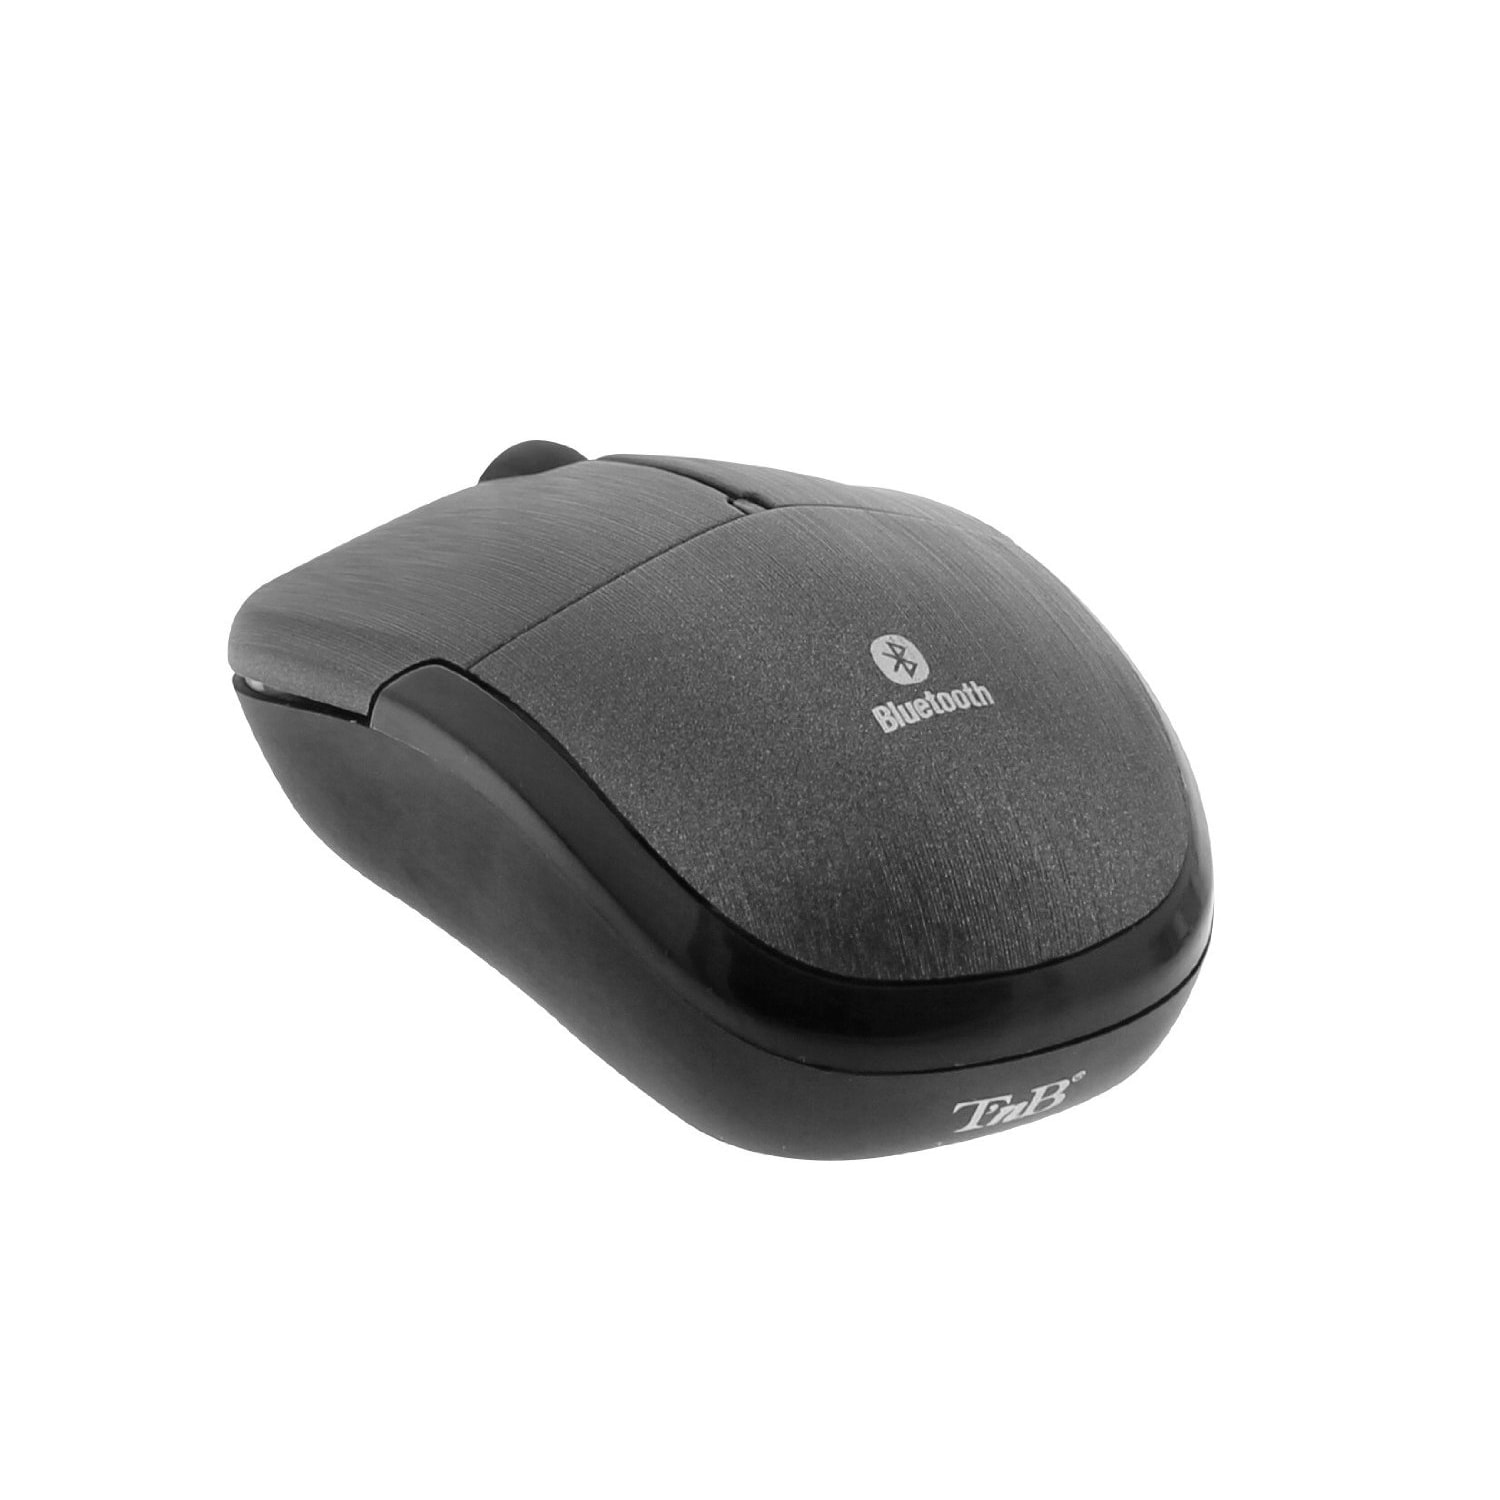 Souris PC T'nB MOOVE Bluetooth 3.0 - MWBTBK - 2